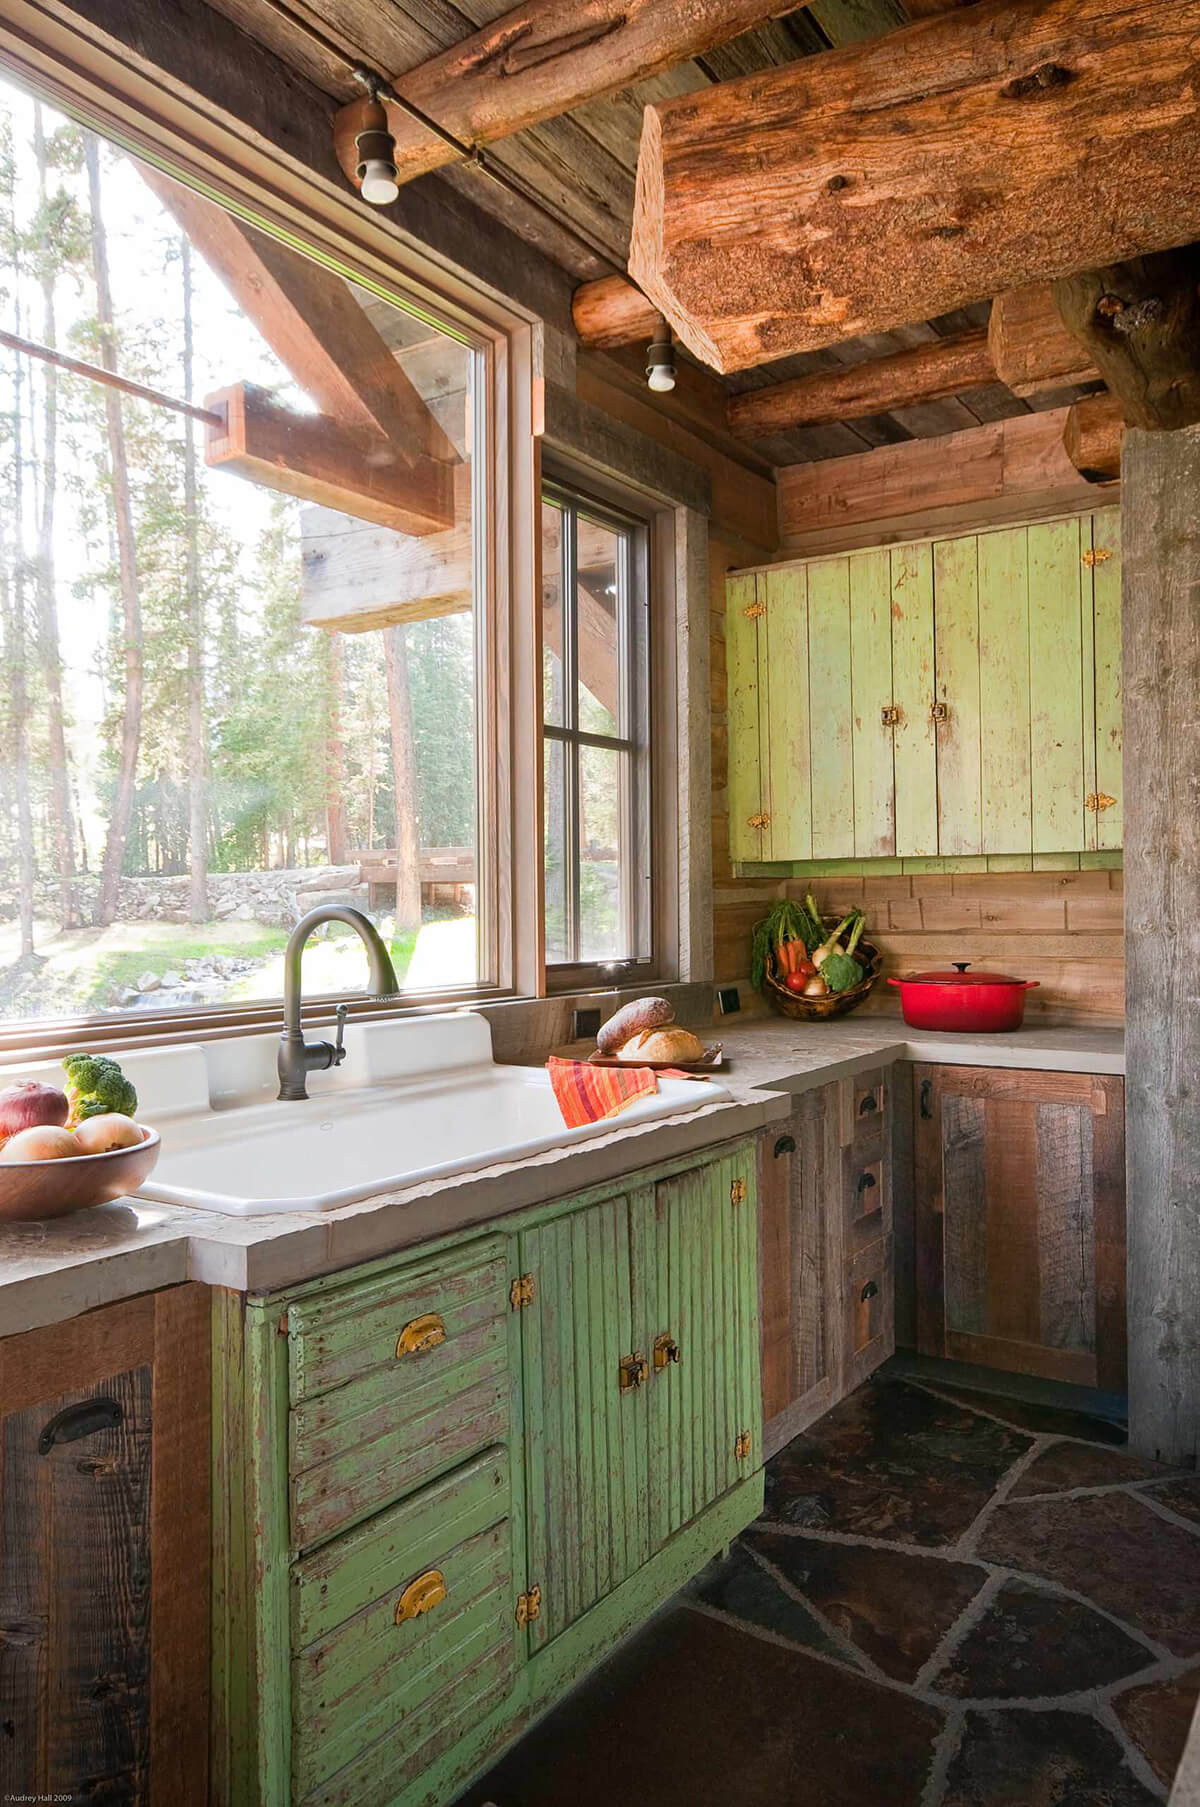 35 Best Farmhouse Kitchen Cabinet Ideas and Designs for 2020 on Farmhouse Kitchen Counter Decor Ideas  id=26317